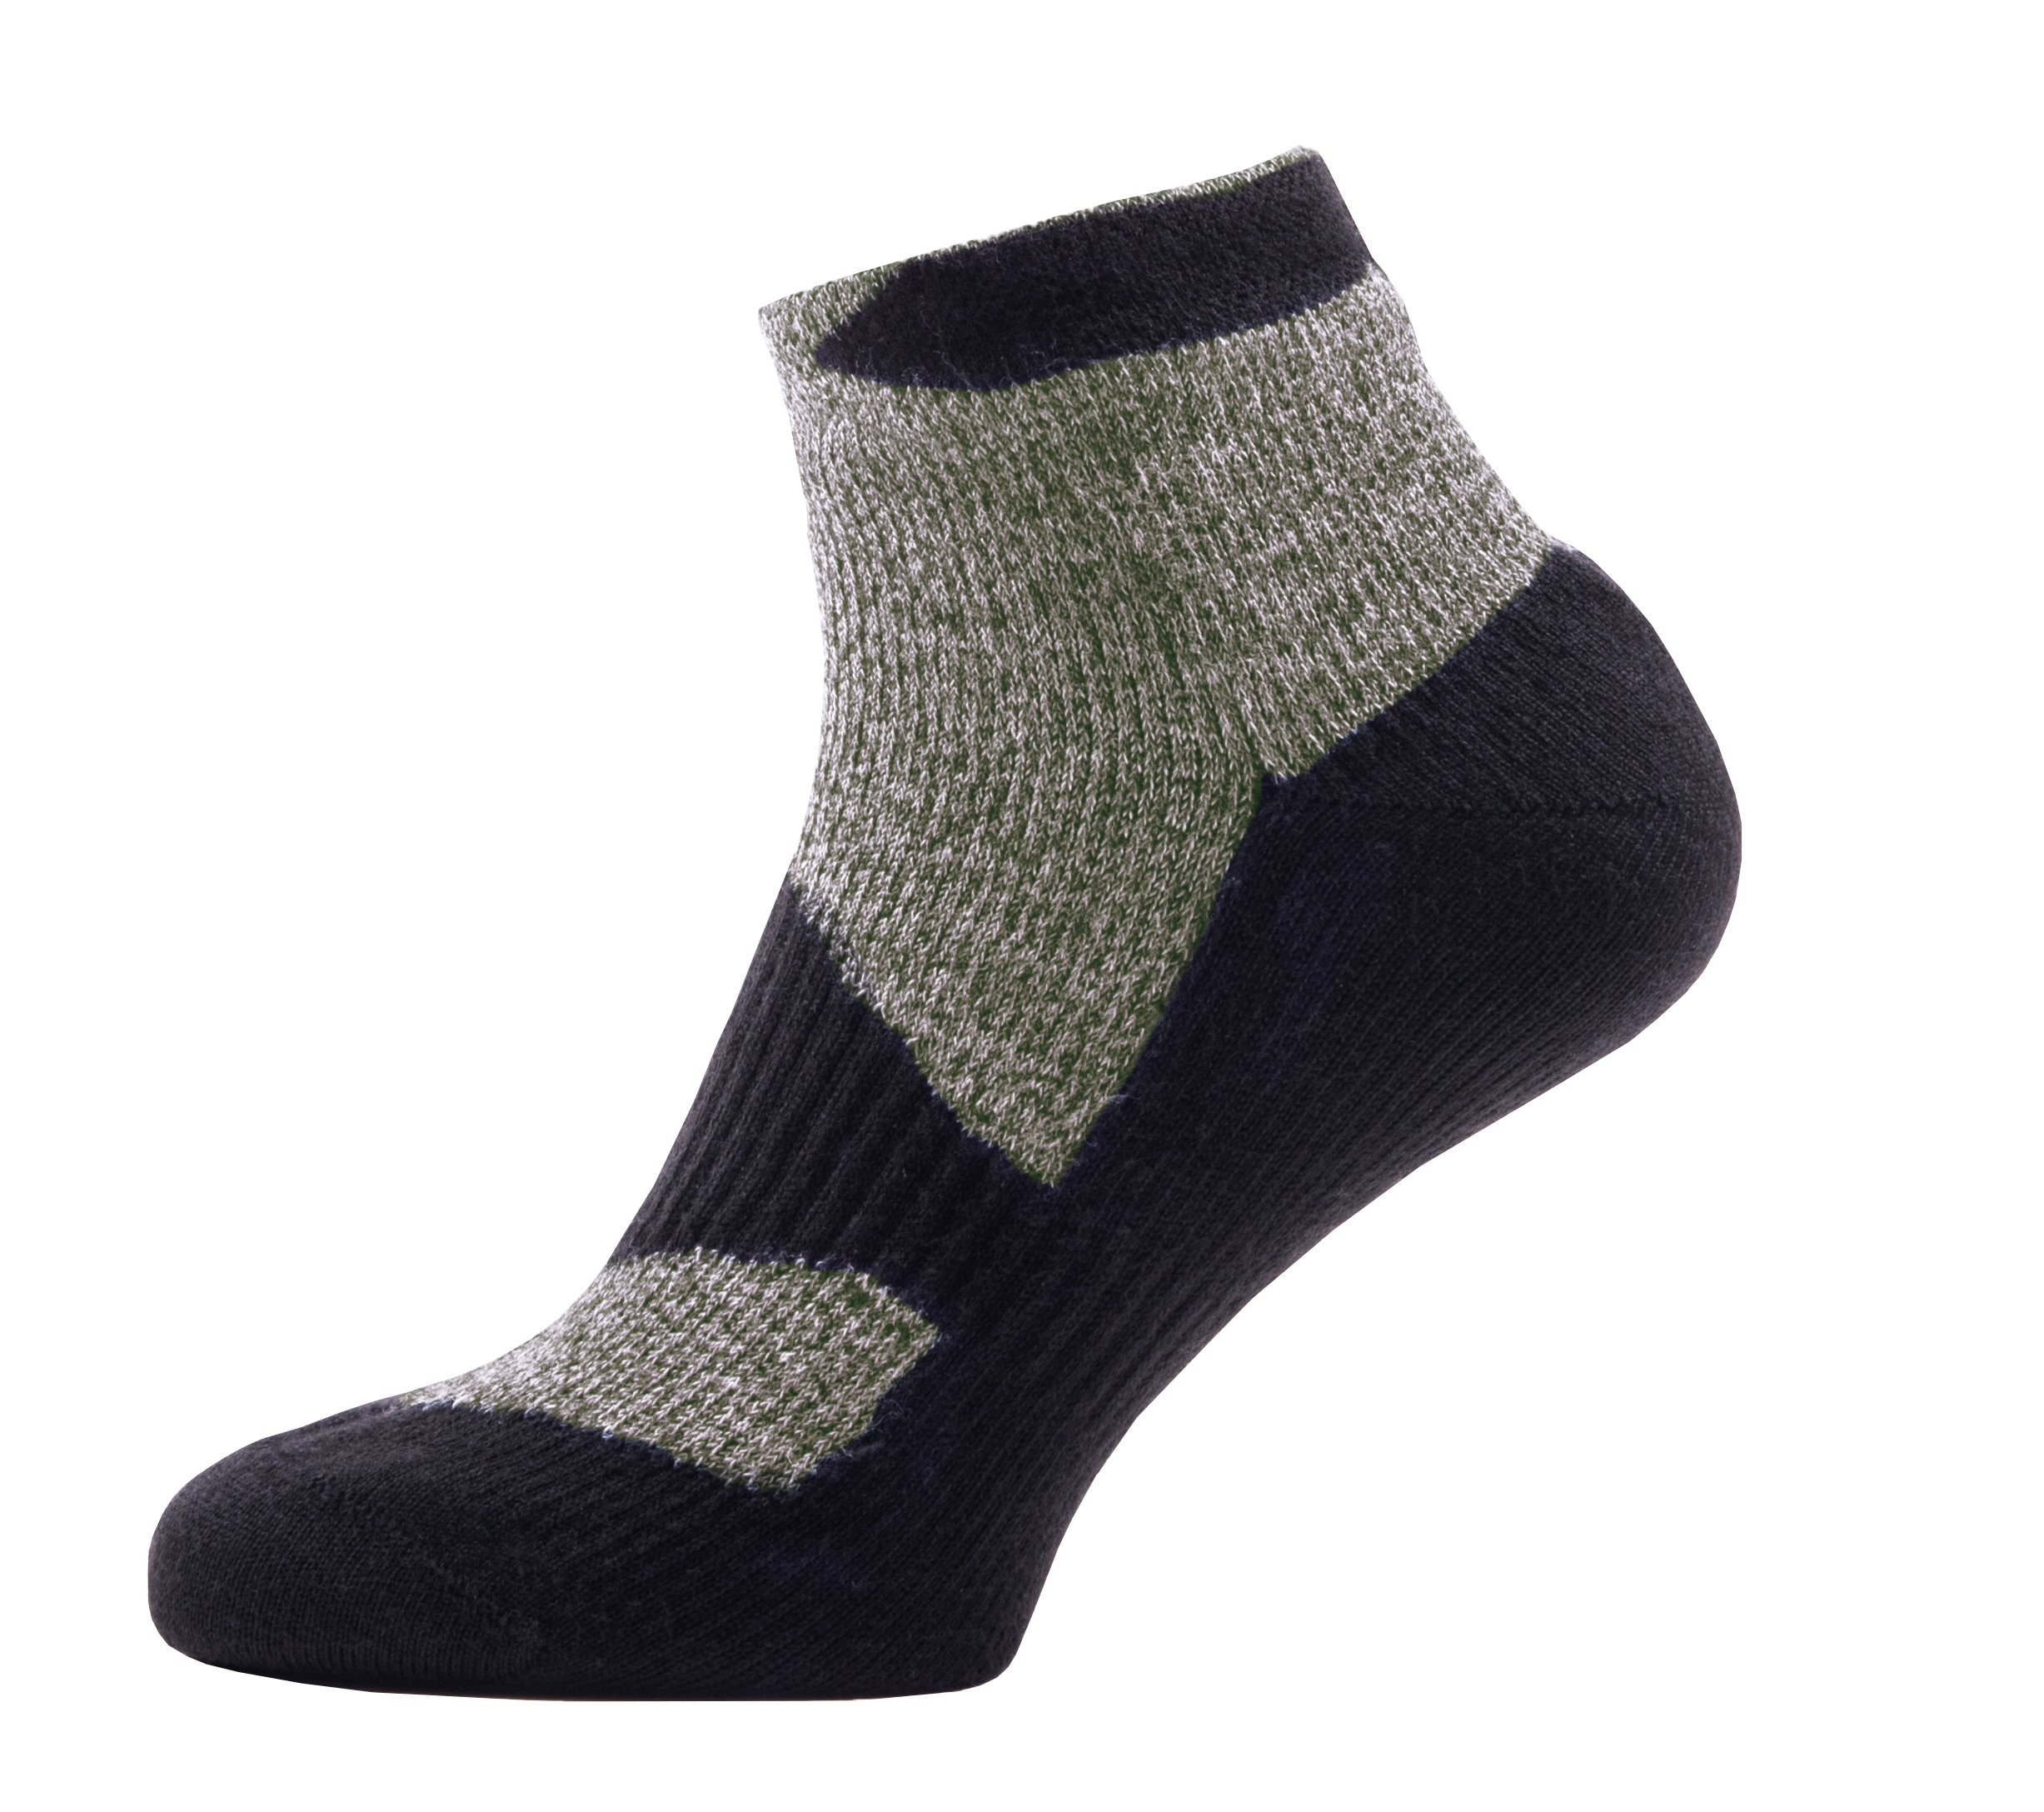 SealSkinz Walking Thin Socklet, Small - Olive Marl/Charcoal. With a Helicase brand sock ring